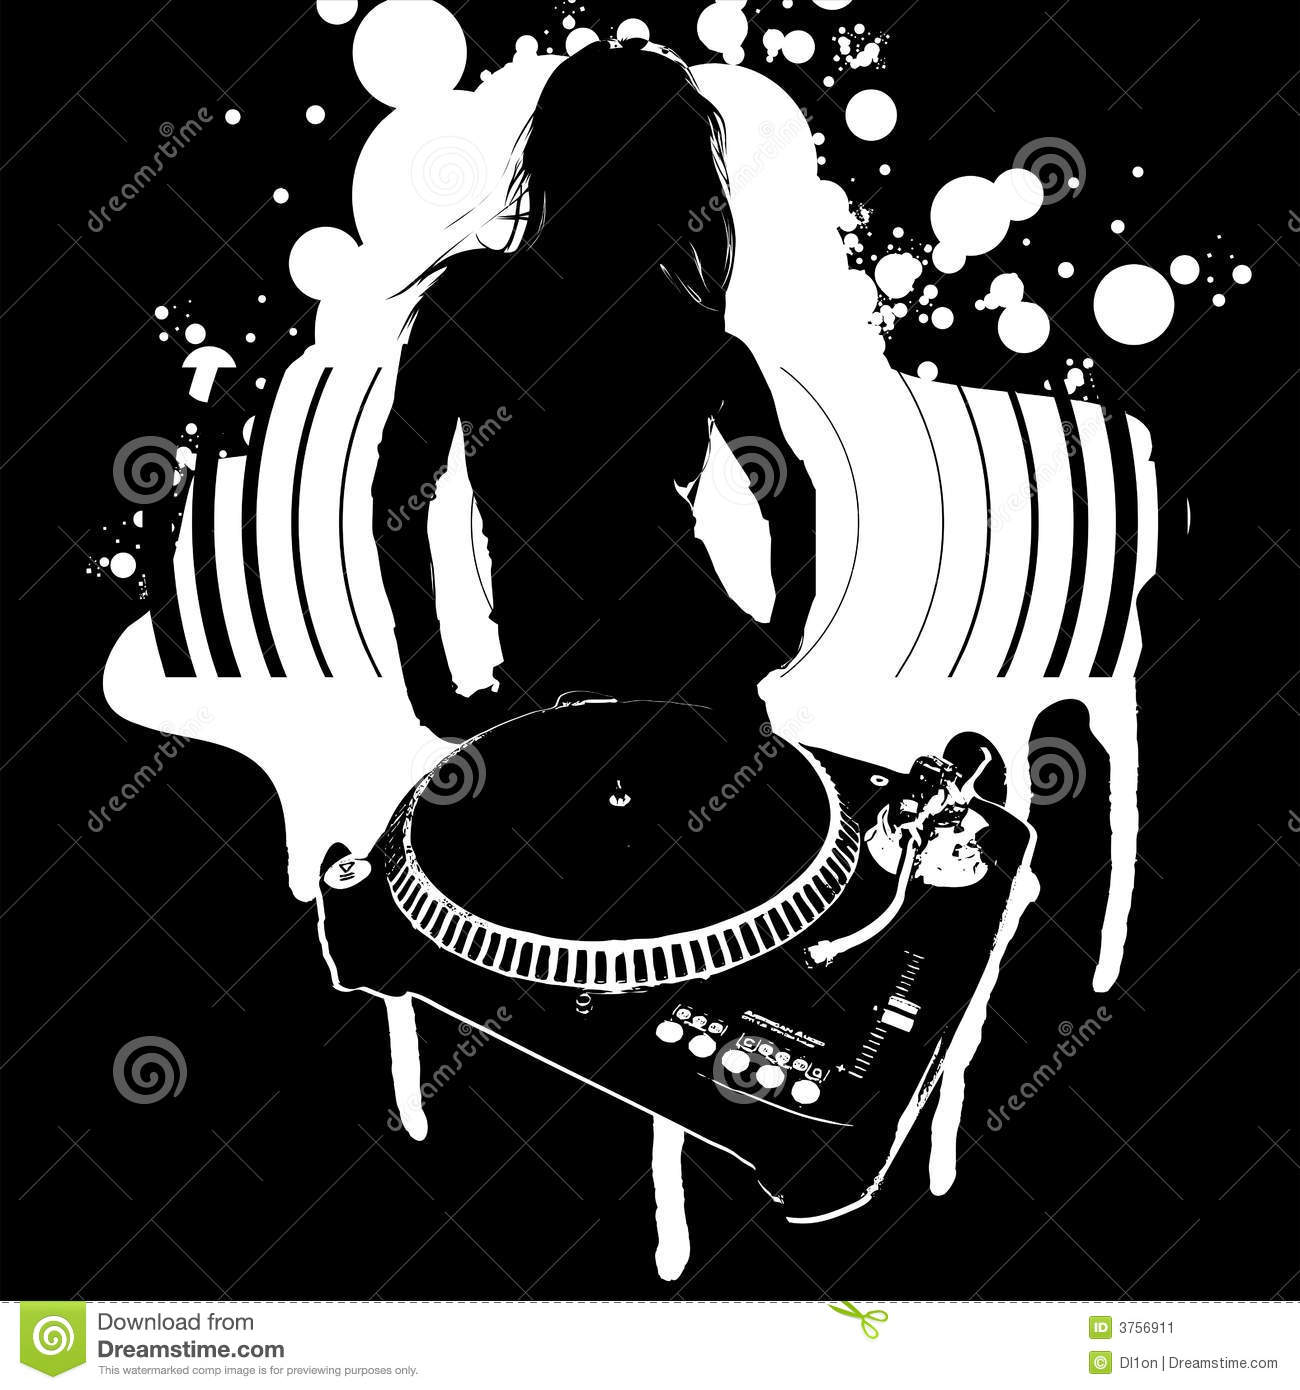 Girl Silhouette, Turntable and Sound. Vector Illustration.